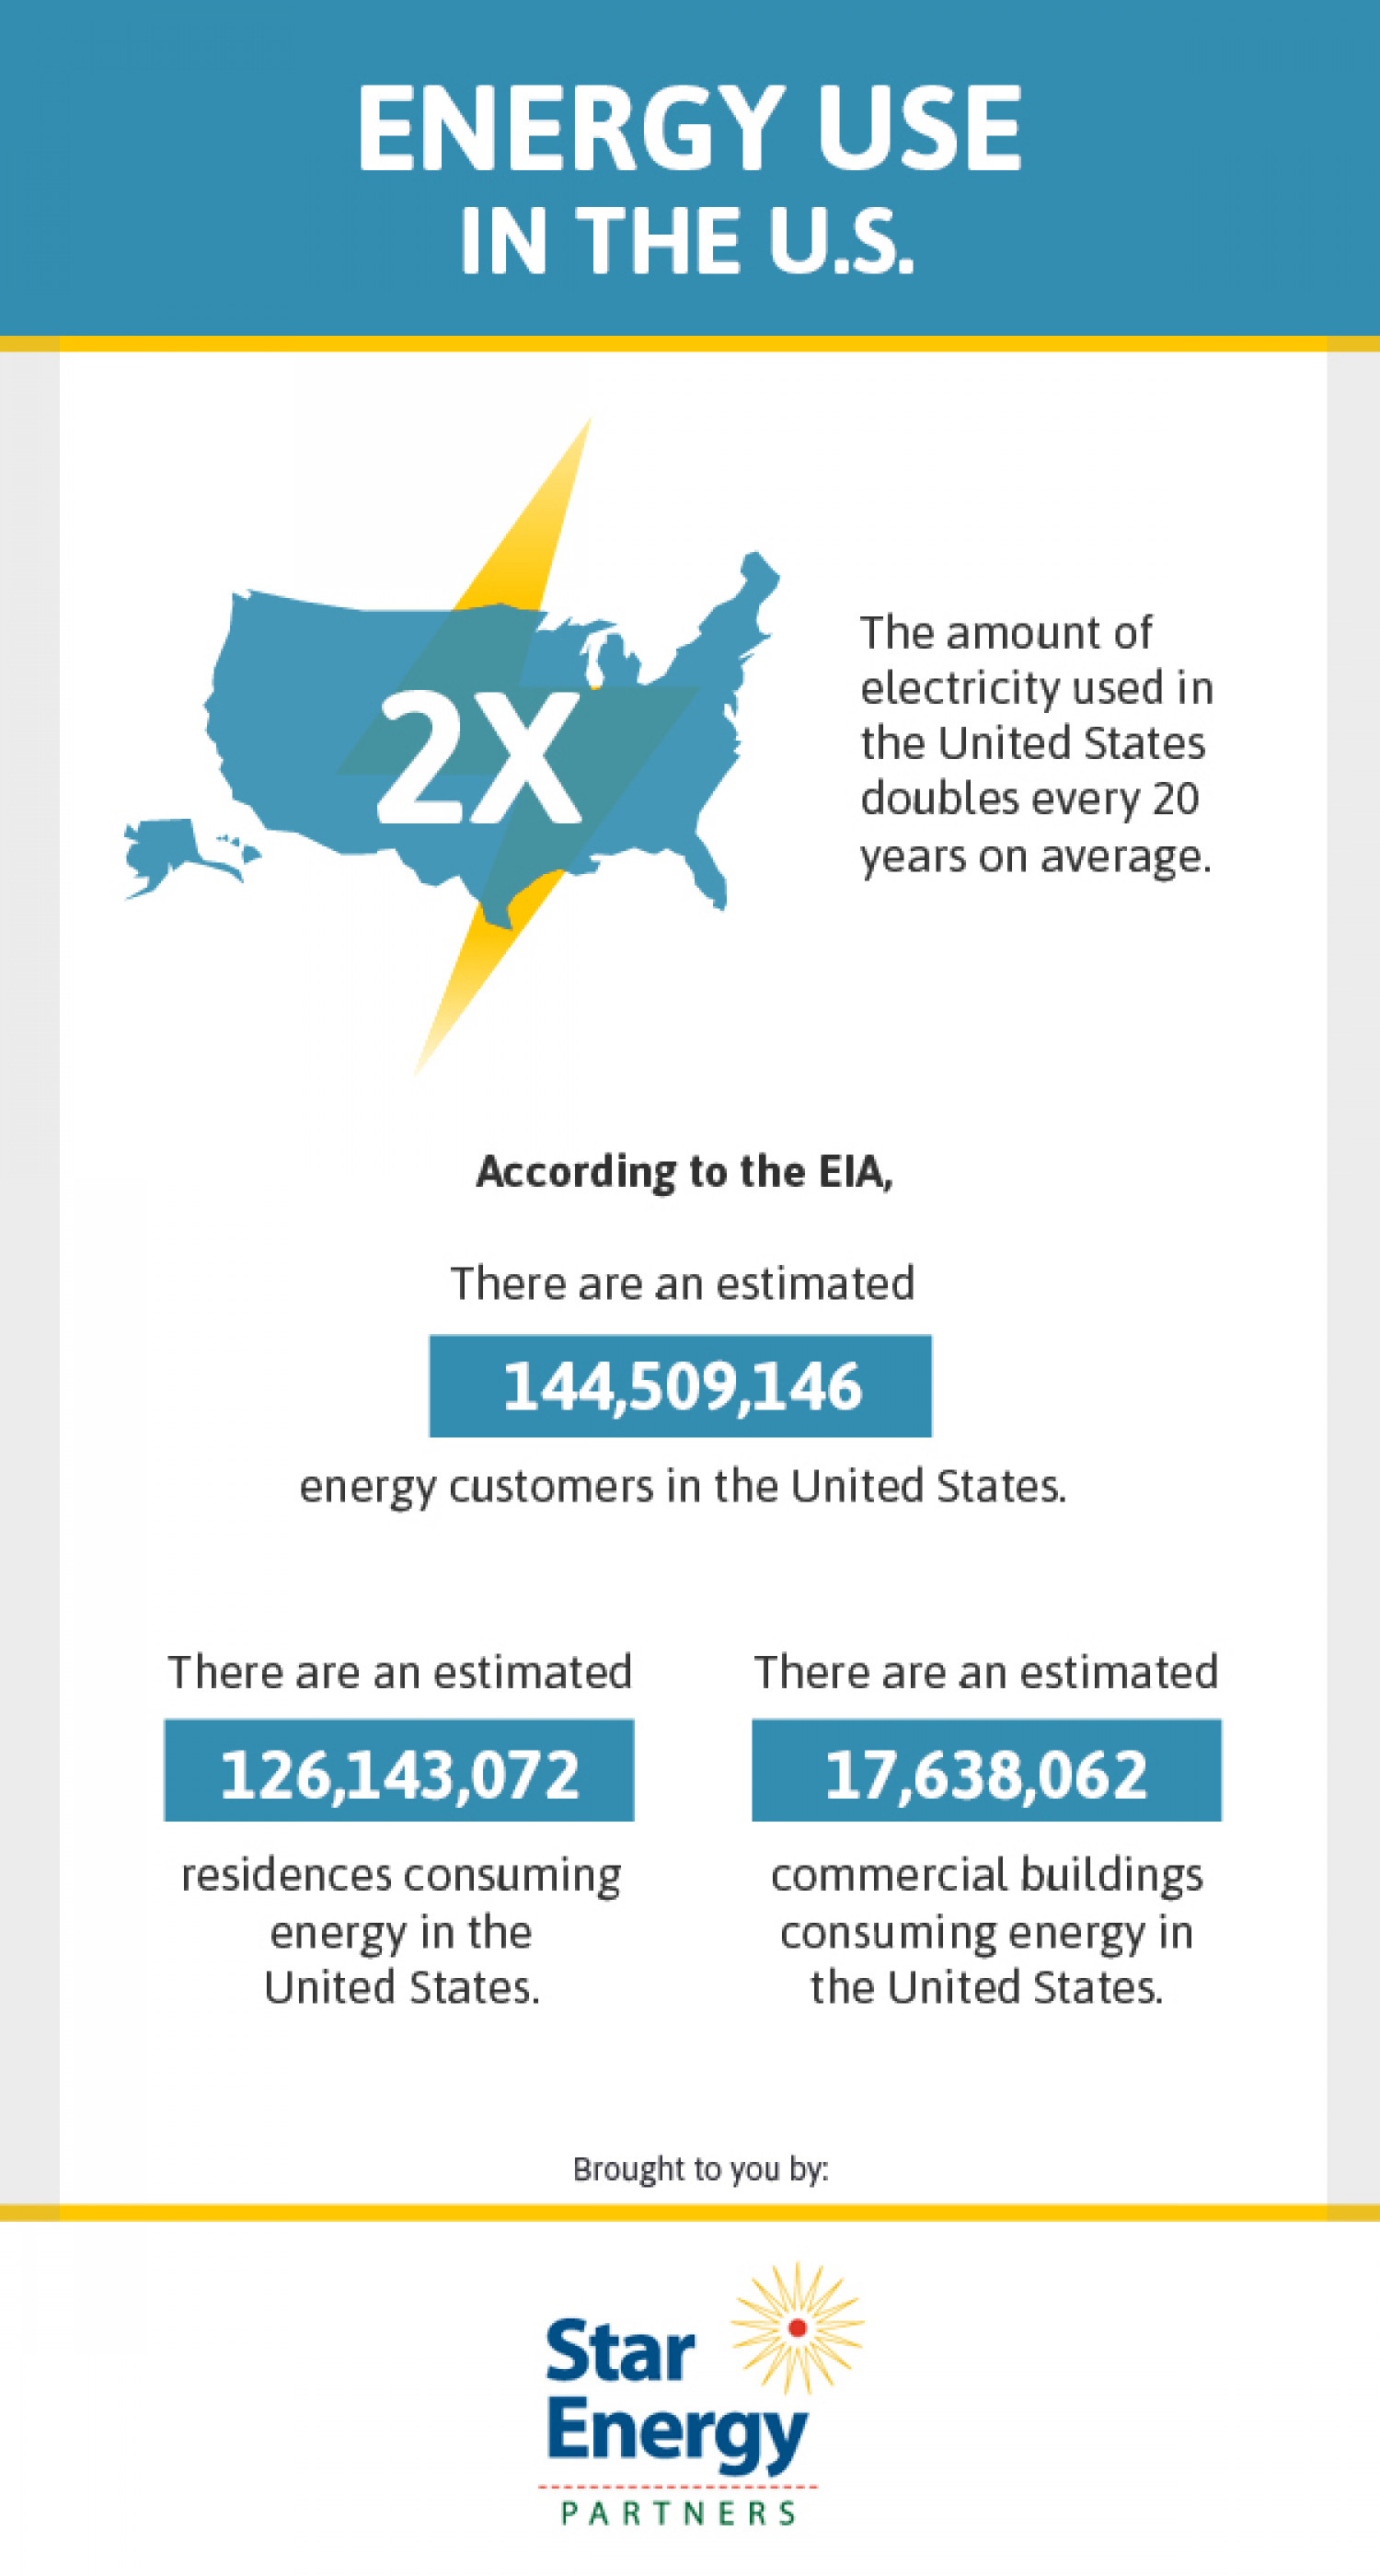 Energy Use in the U.S. Infographic